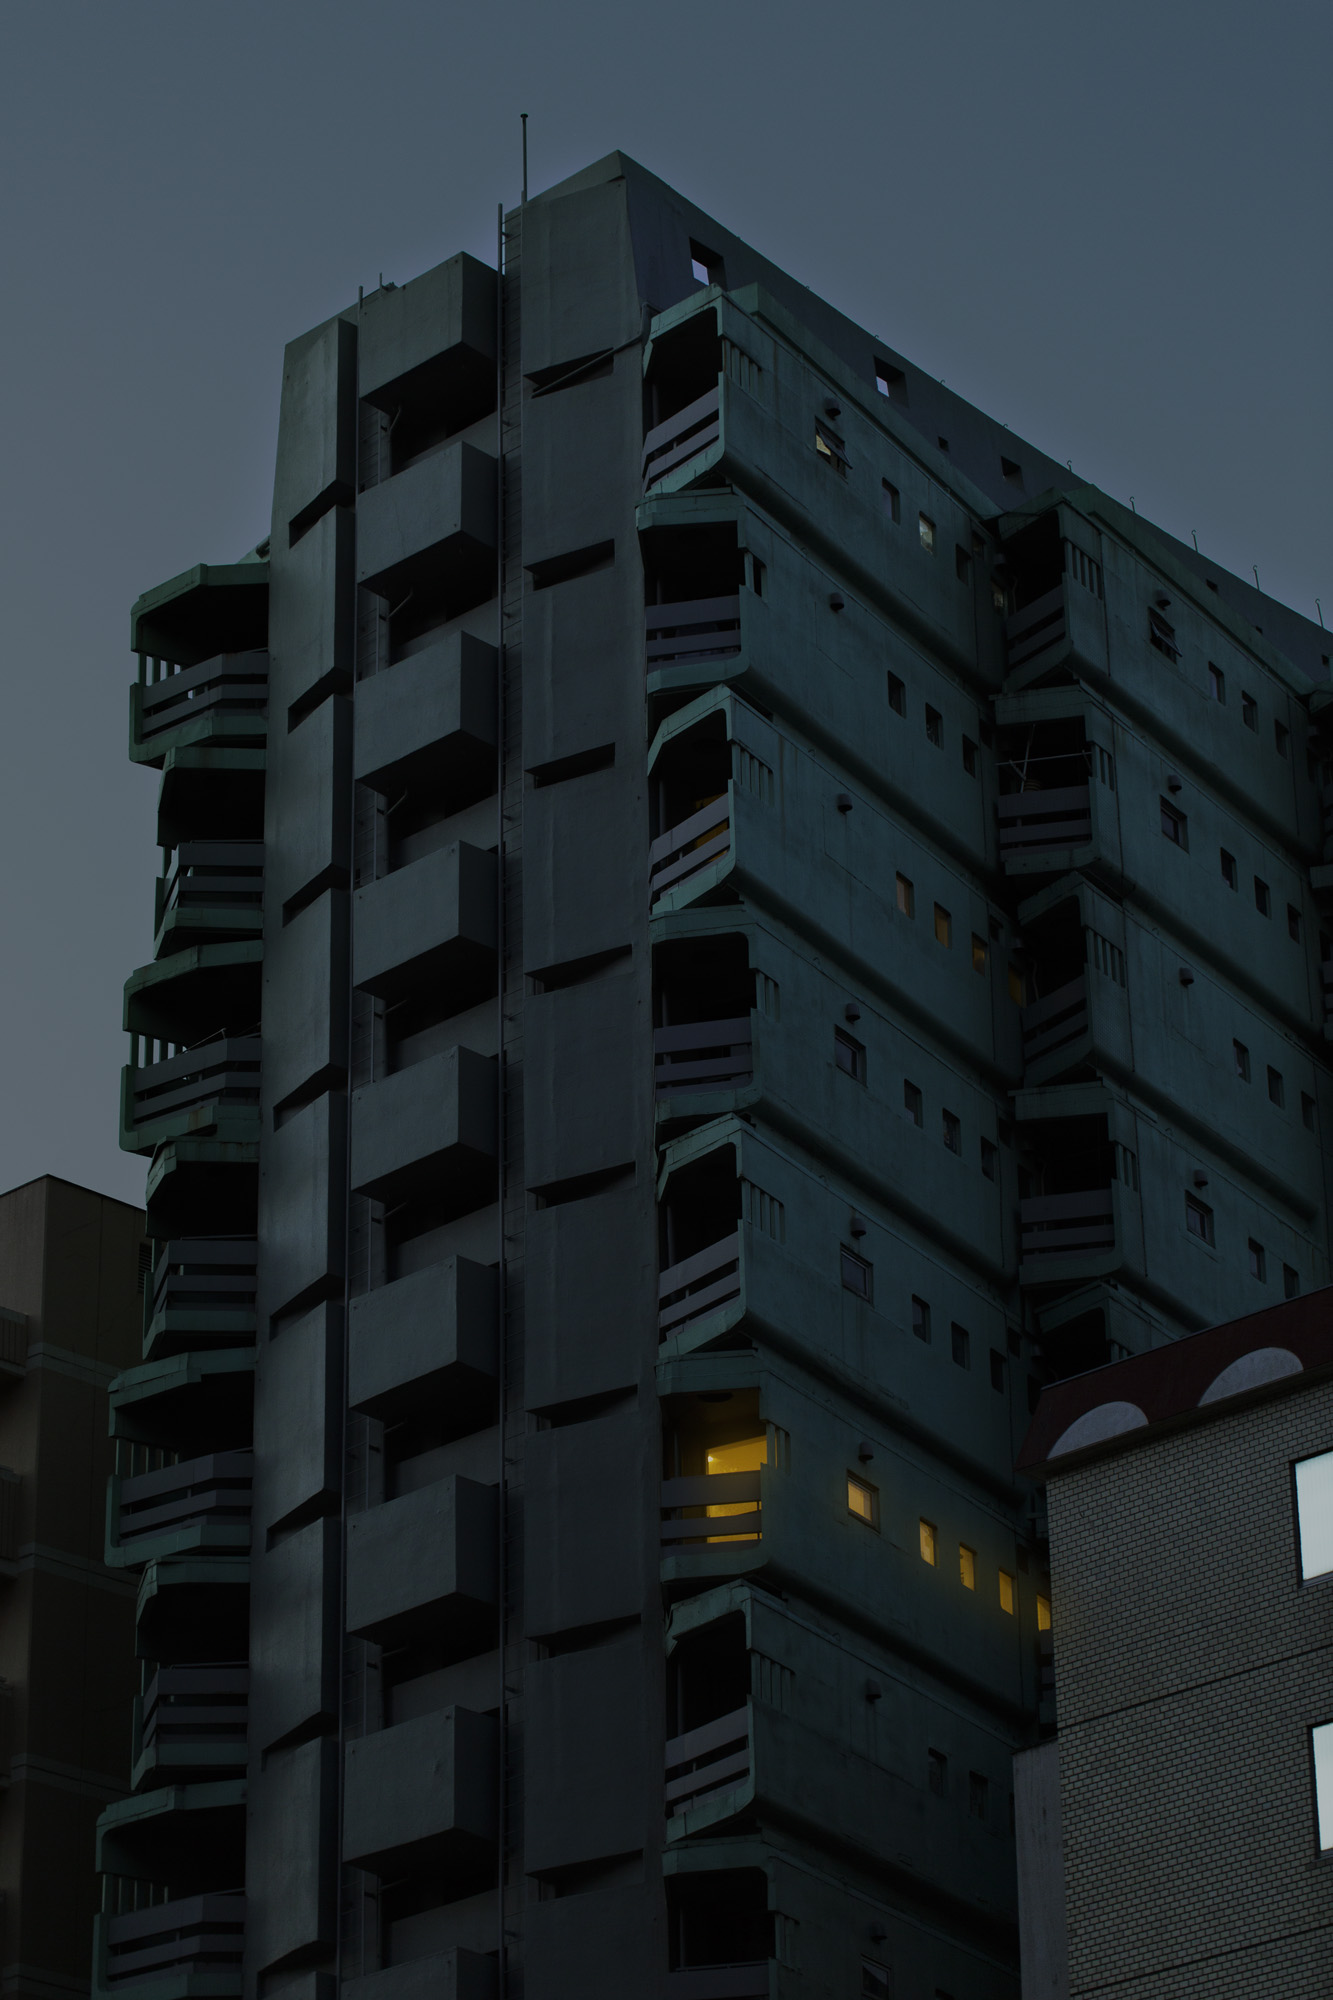 TK_Apartment_Block.jpg